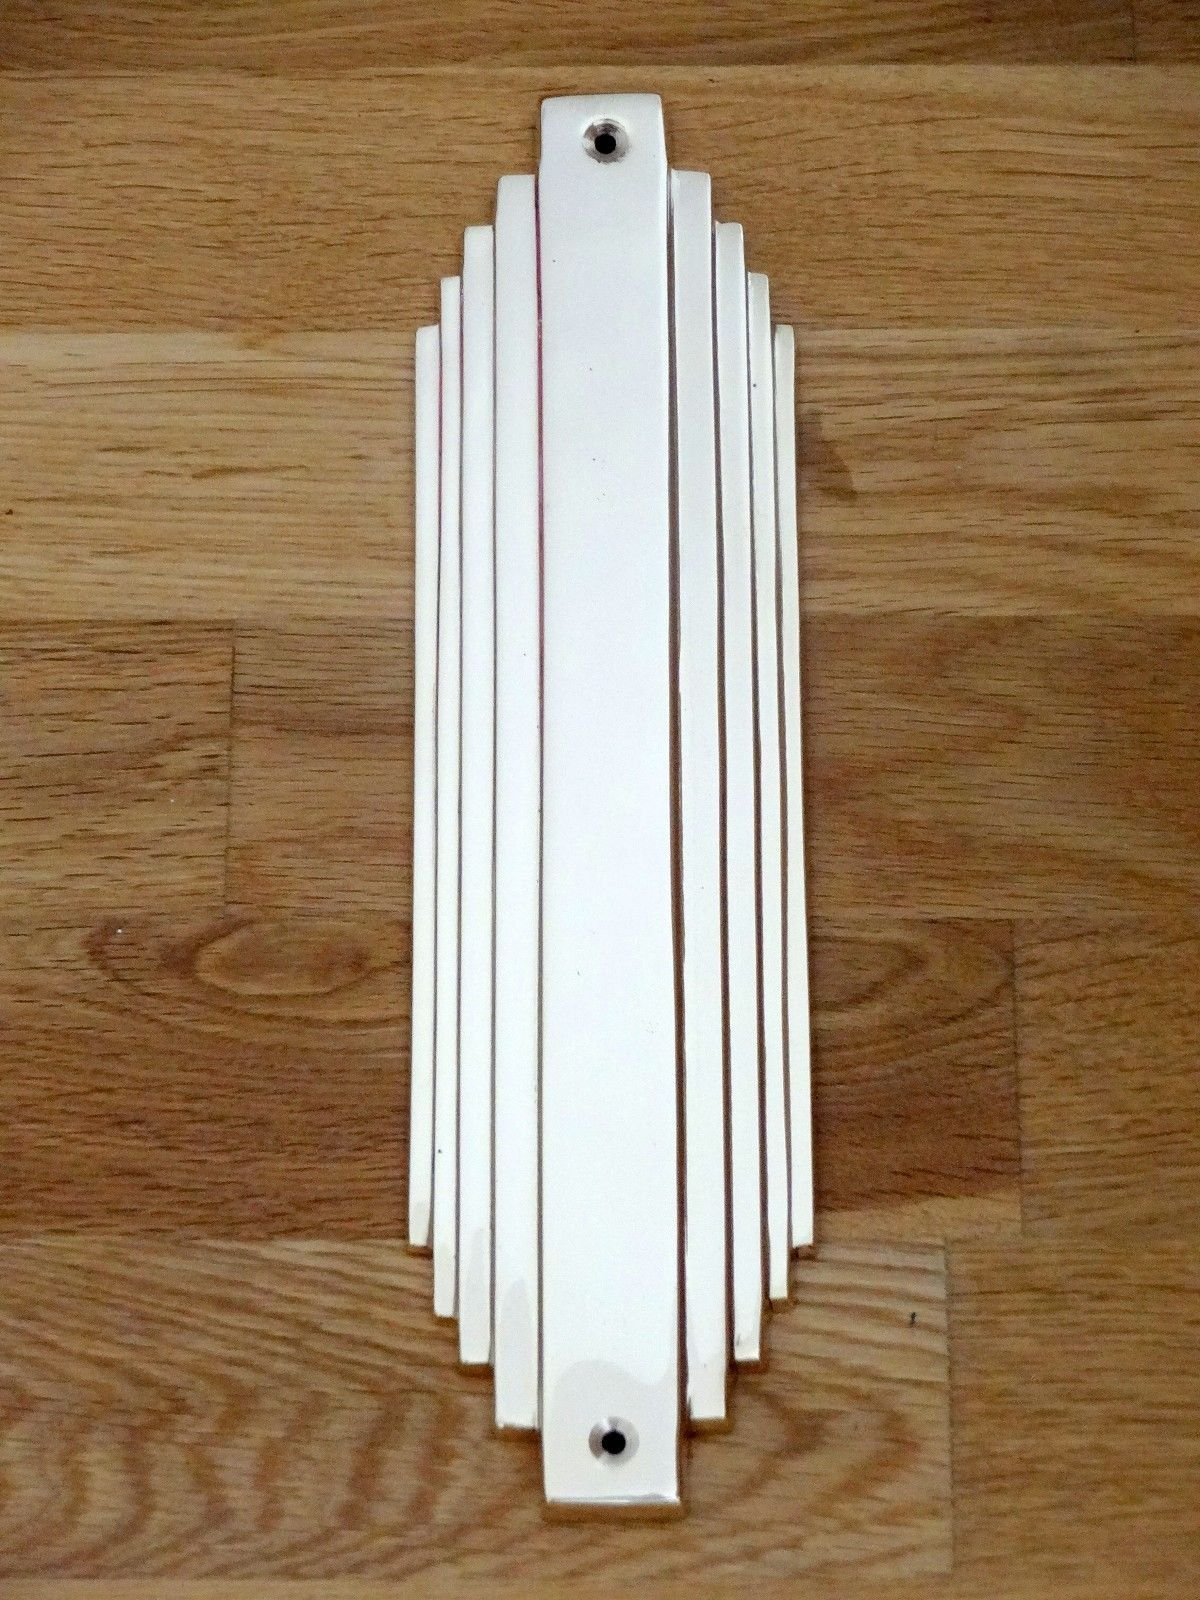 Pin by denise huddle on deco in art deco deco art deco